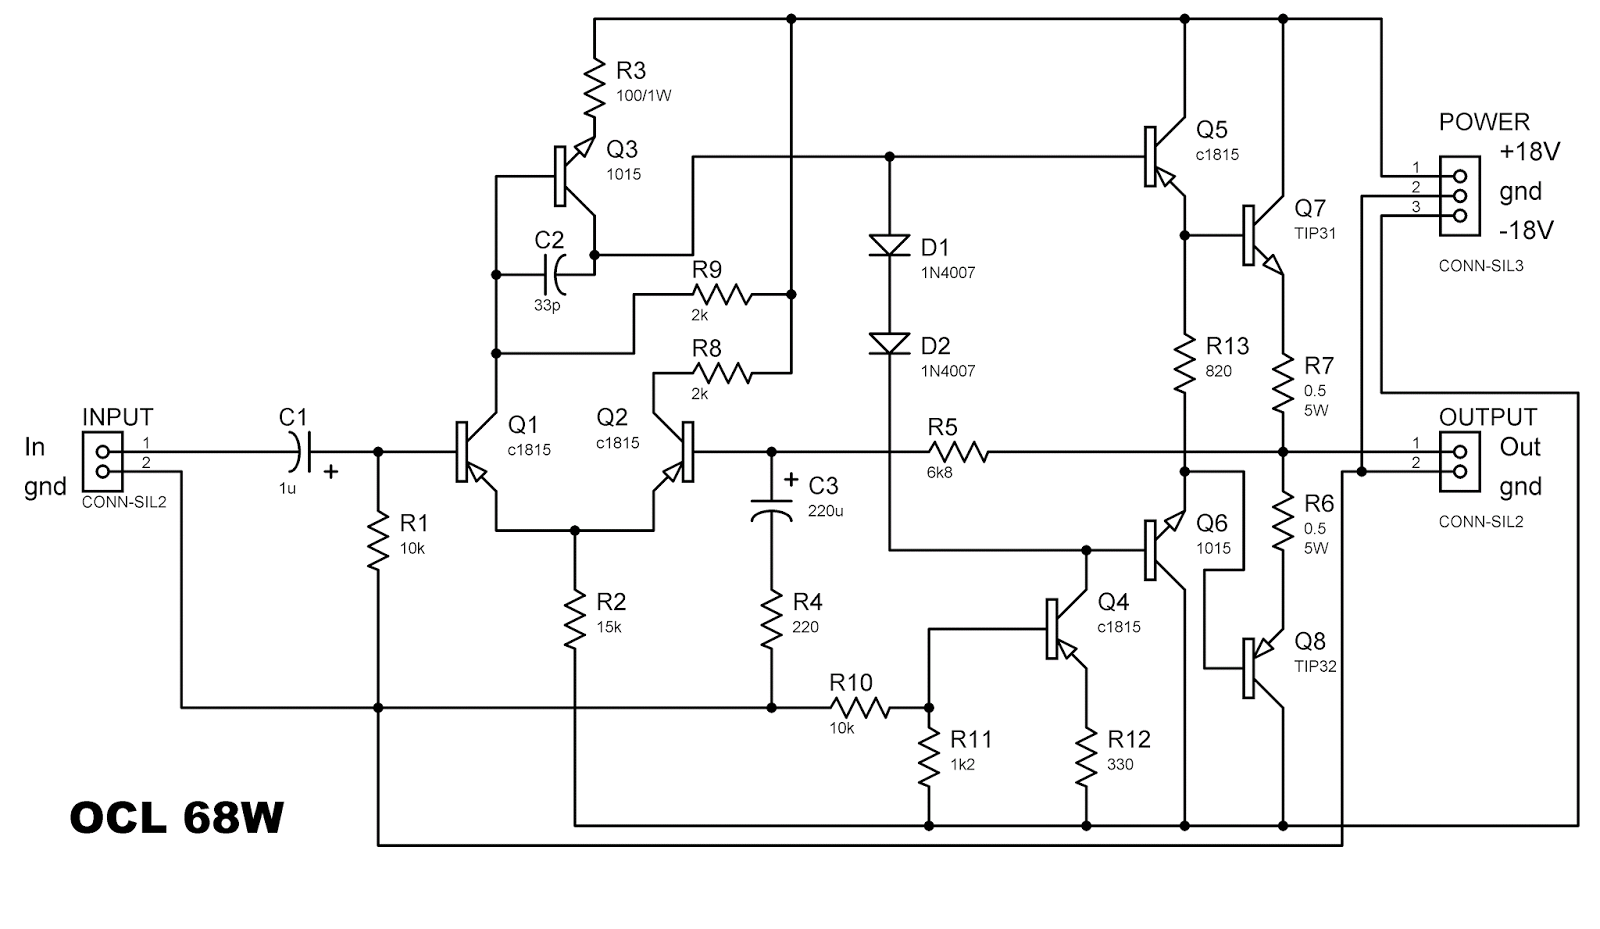 medium resolution of ocl 68 watt power amplifier electronic circuit inverter circuit othercircuit amplifiercircuit circuit diagram